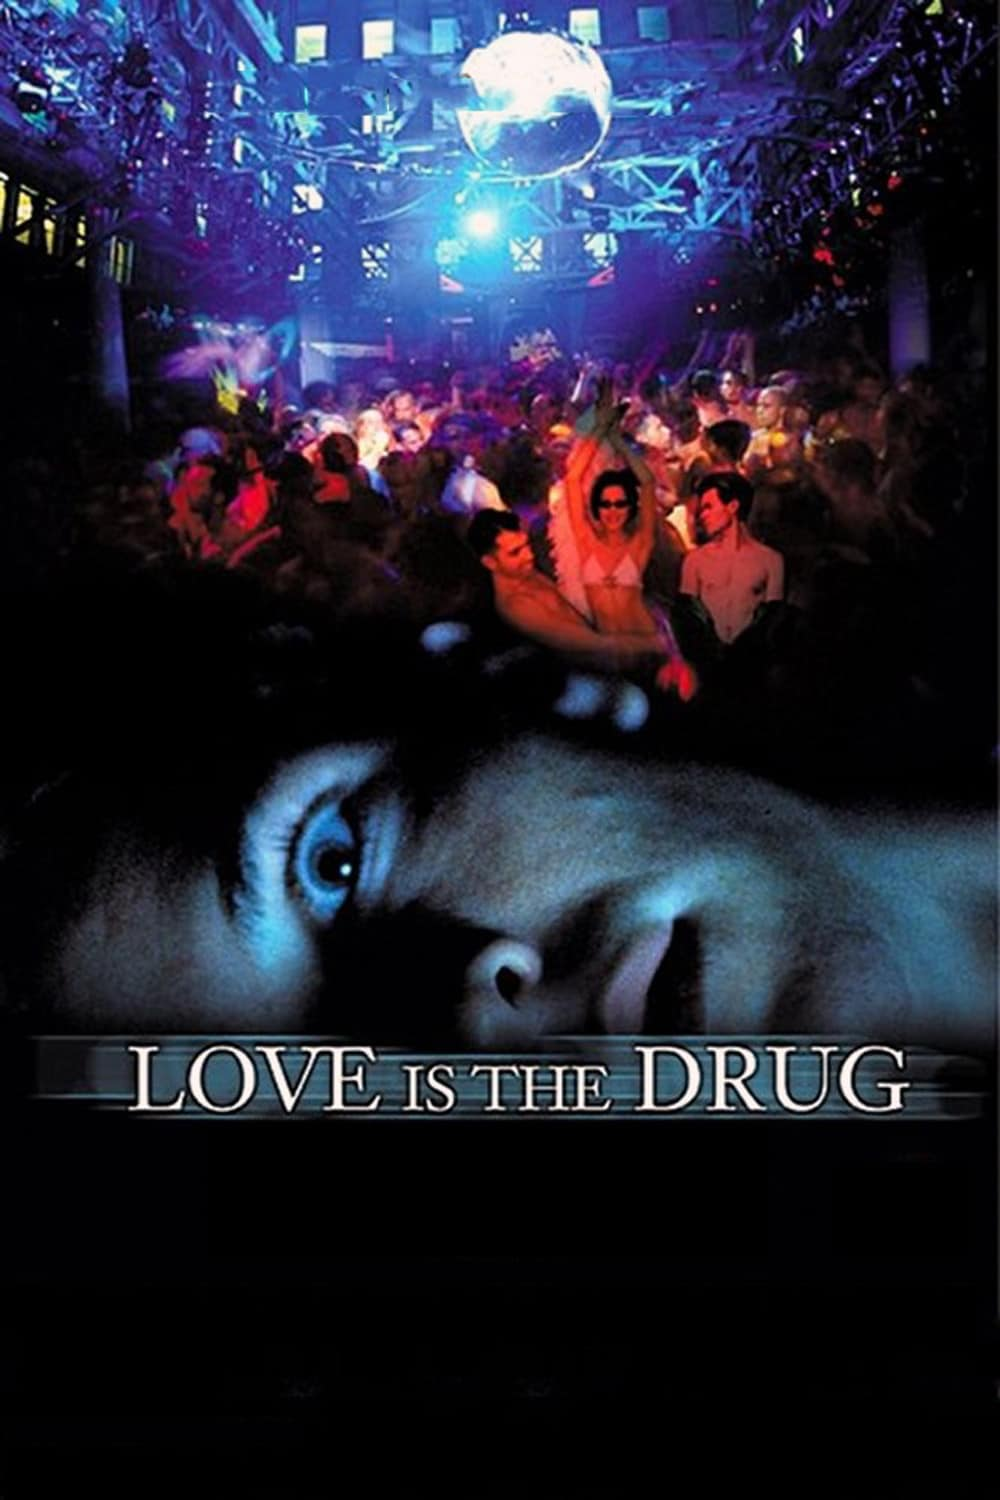 Love Is the Drug, 2006